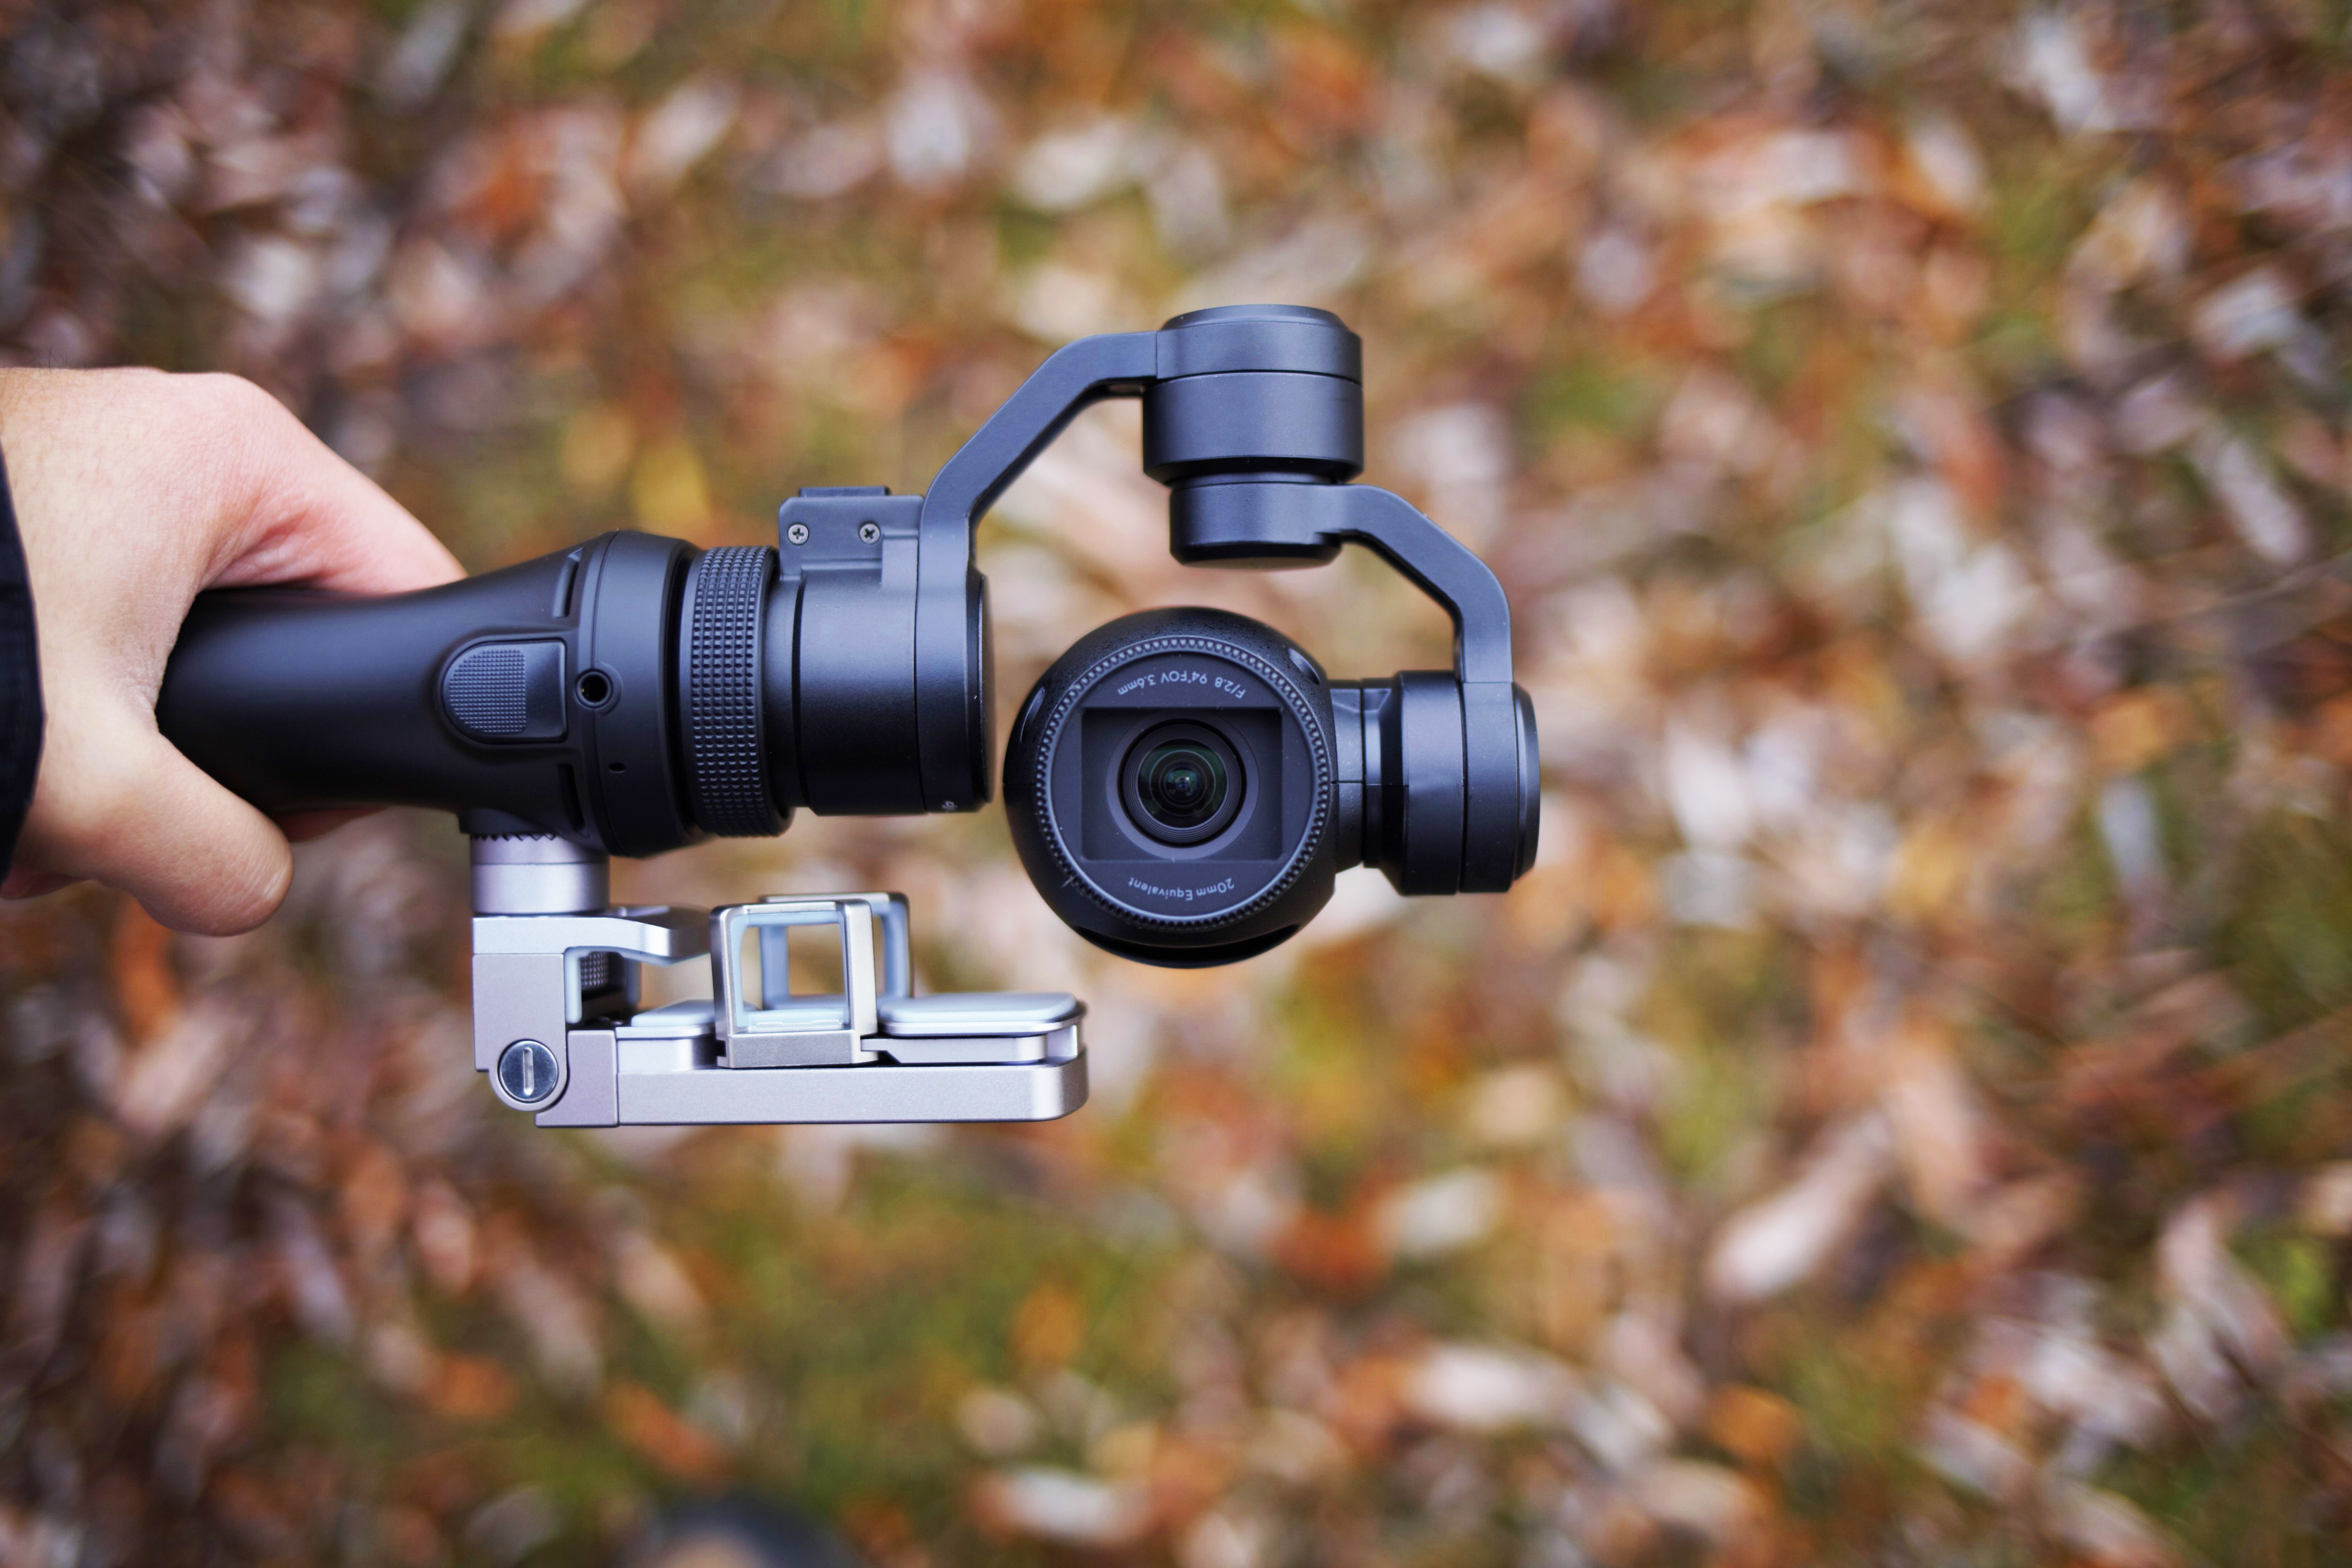 DJI Revolutionizes the Future of Filmmaking with New Smartphone Gimbal